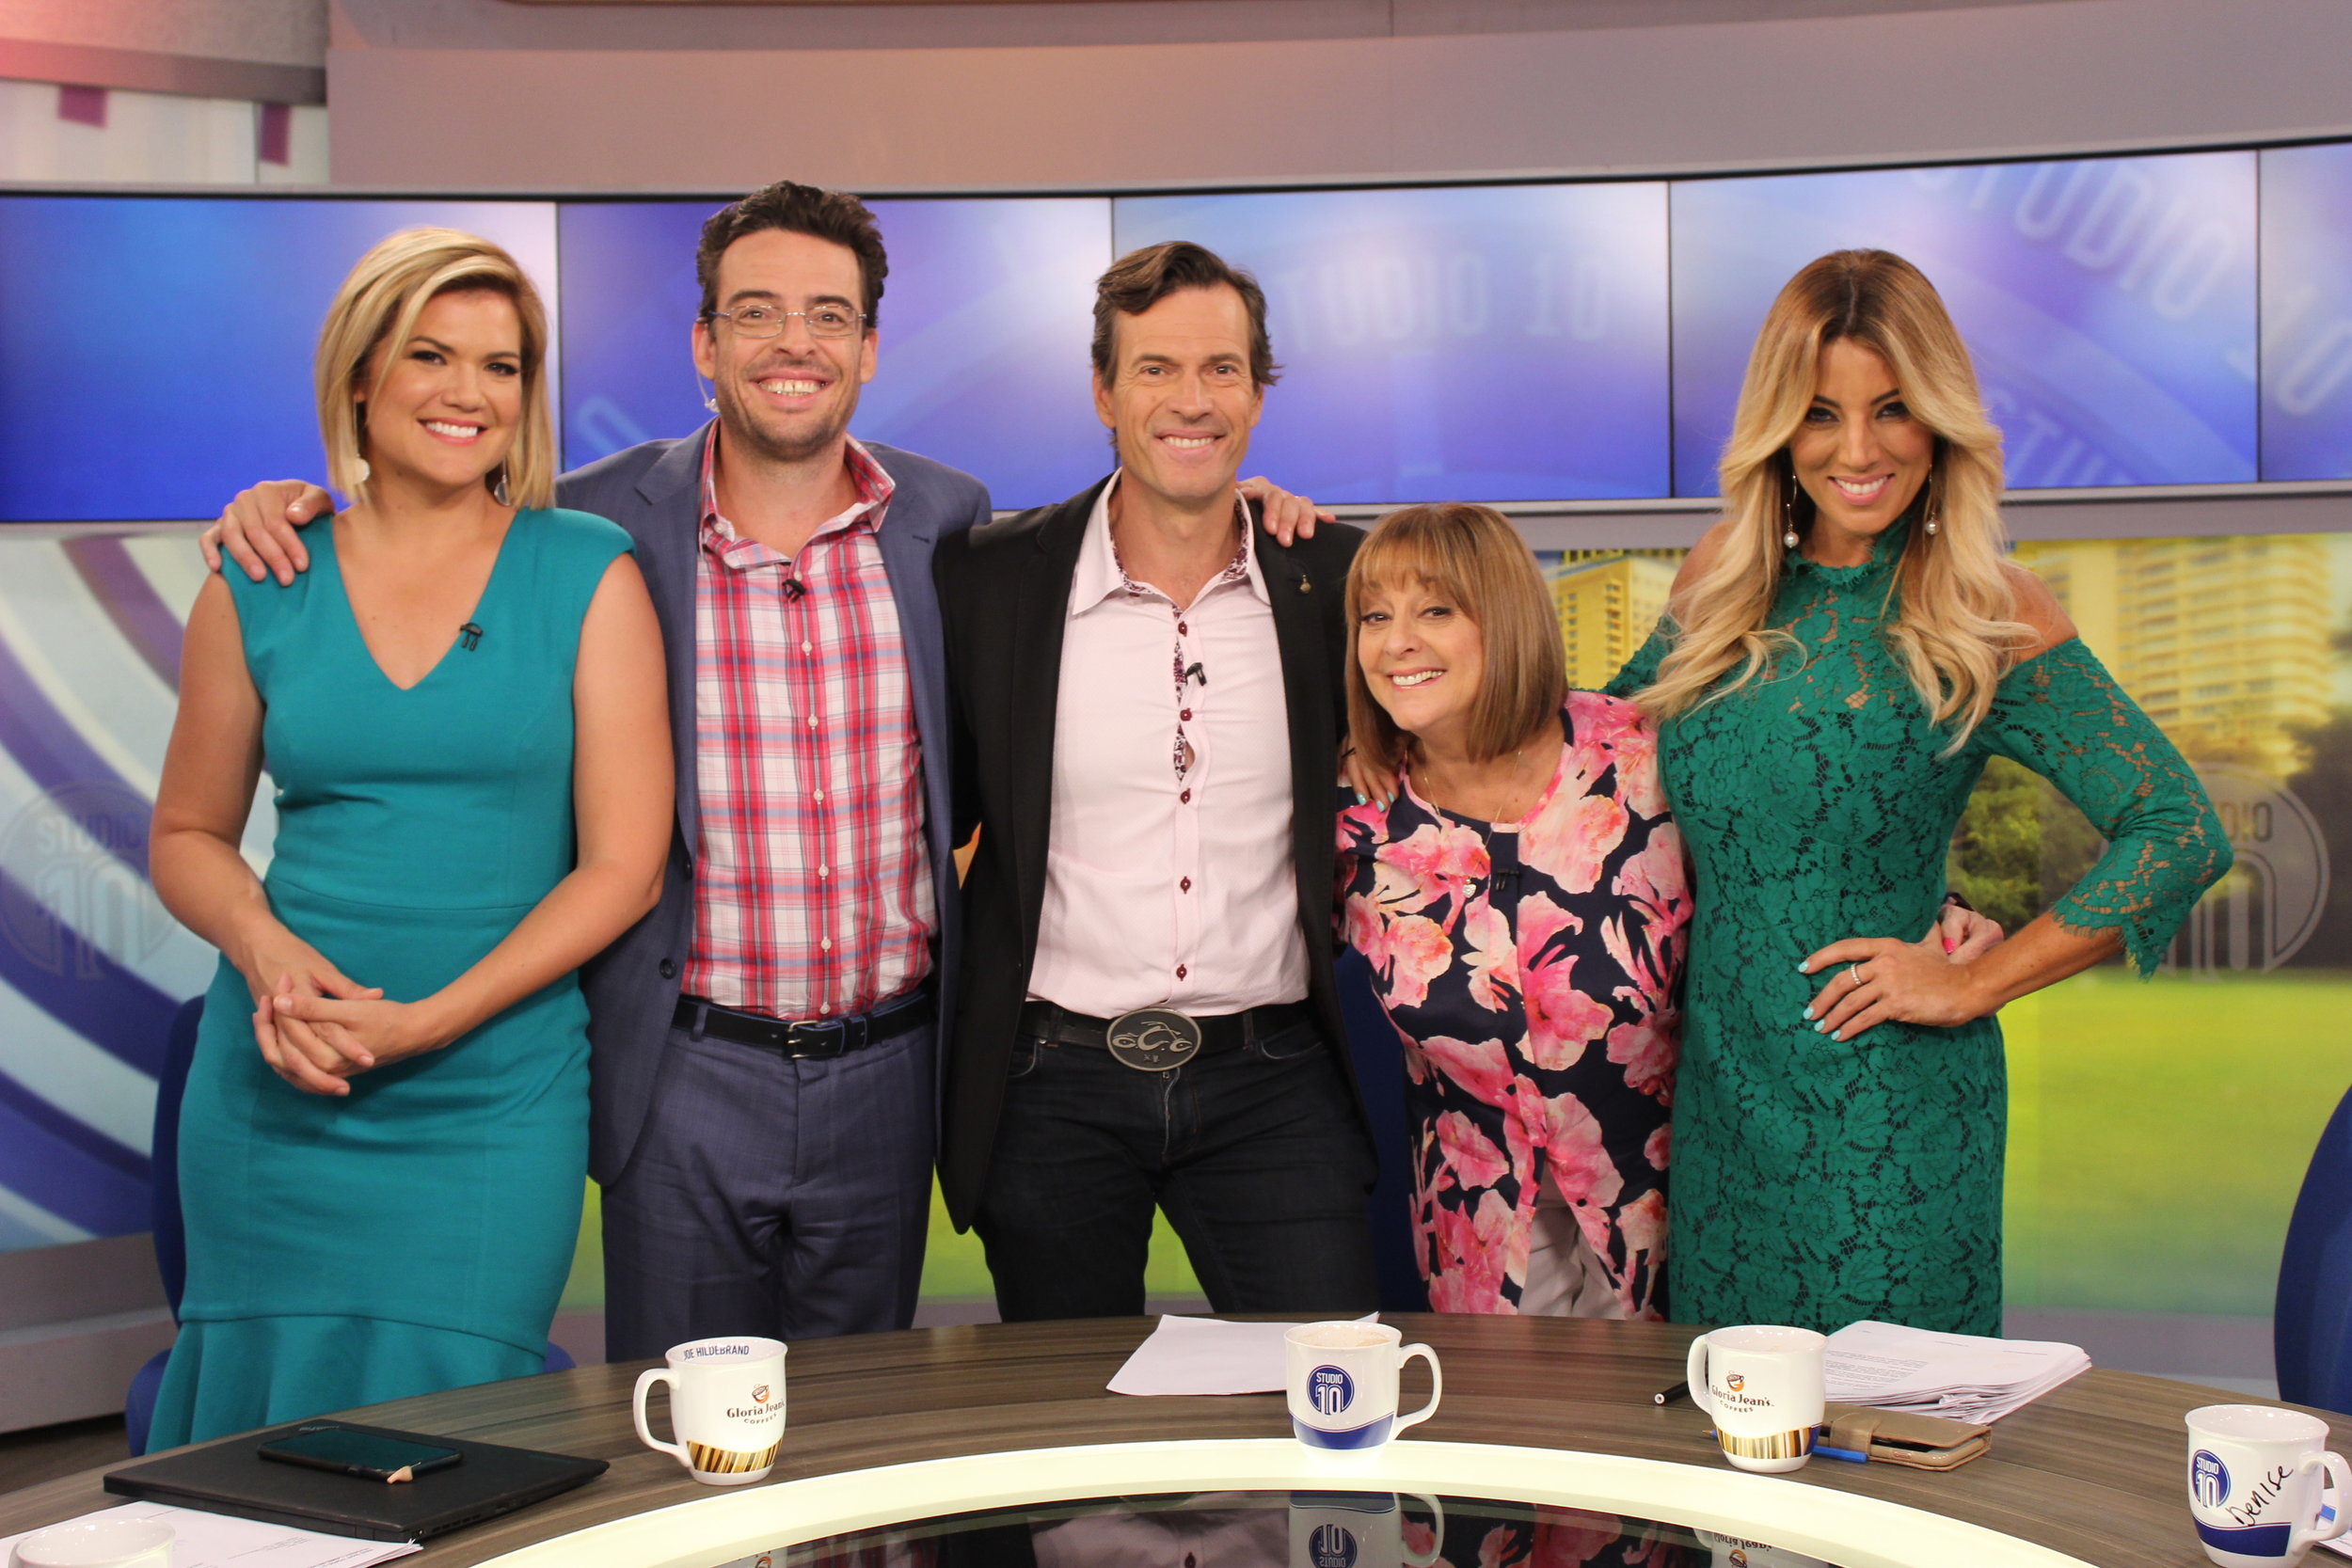 Gorgeous Jo Casamento on the set of Studio 10 with Sarah Harris, Joe Hildebrand, Brendan Jones and Denise Drysdale.